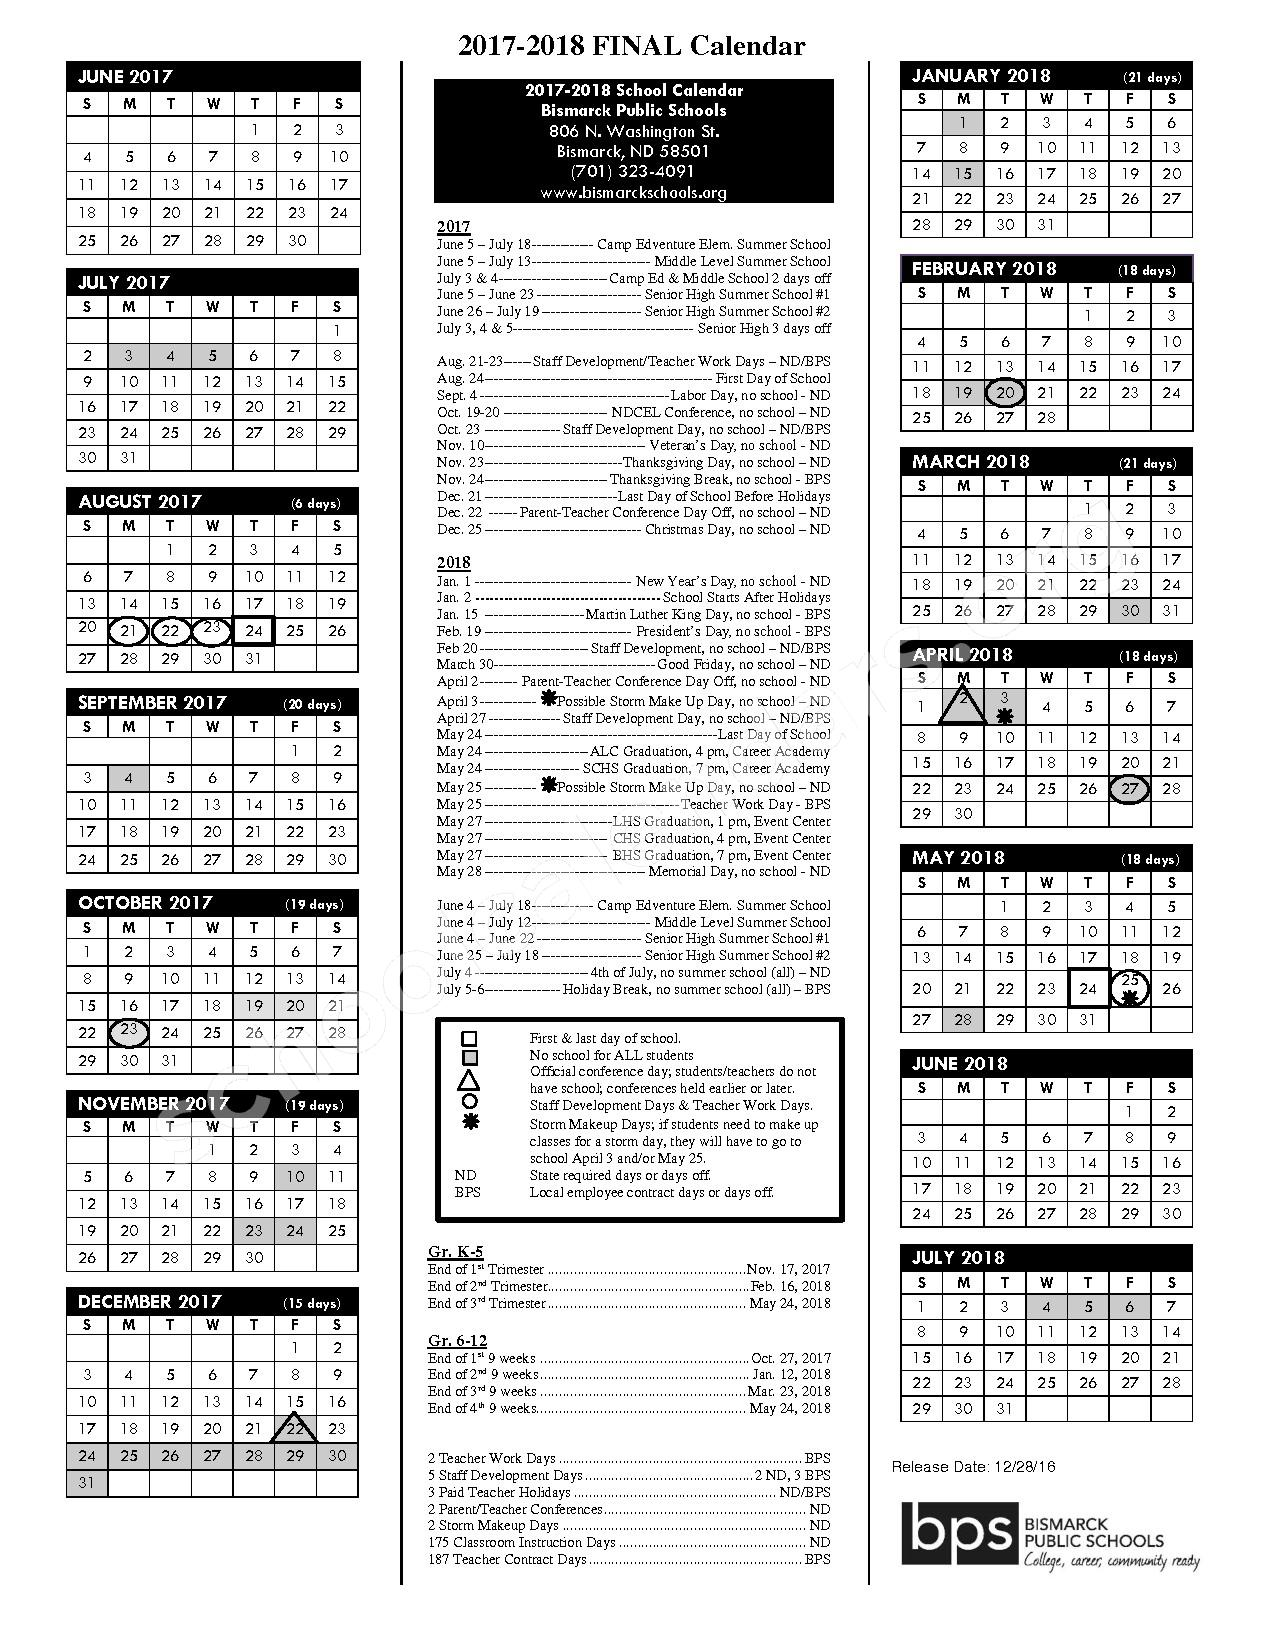 2017 - 2018 school calendar – Becep Center – page 1